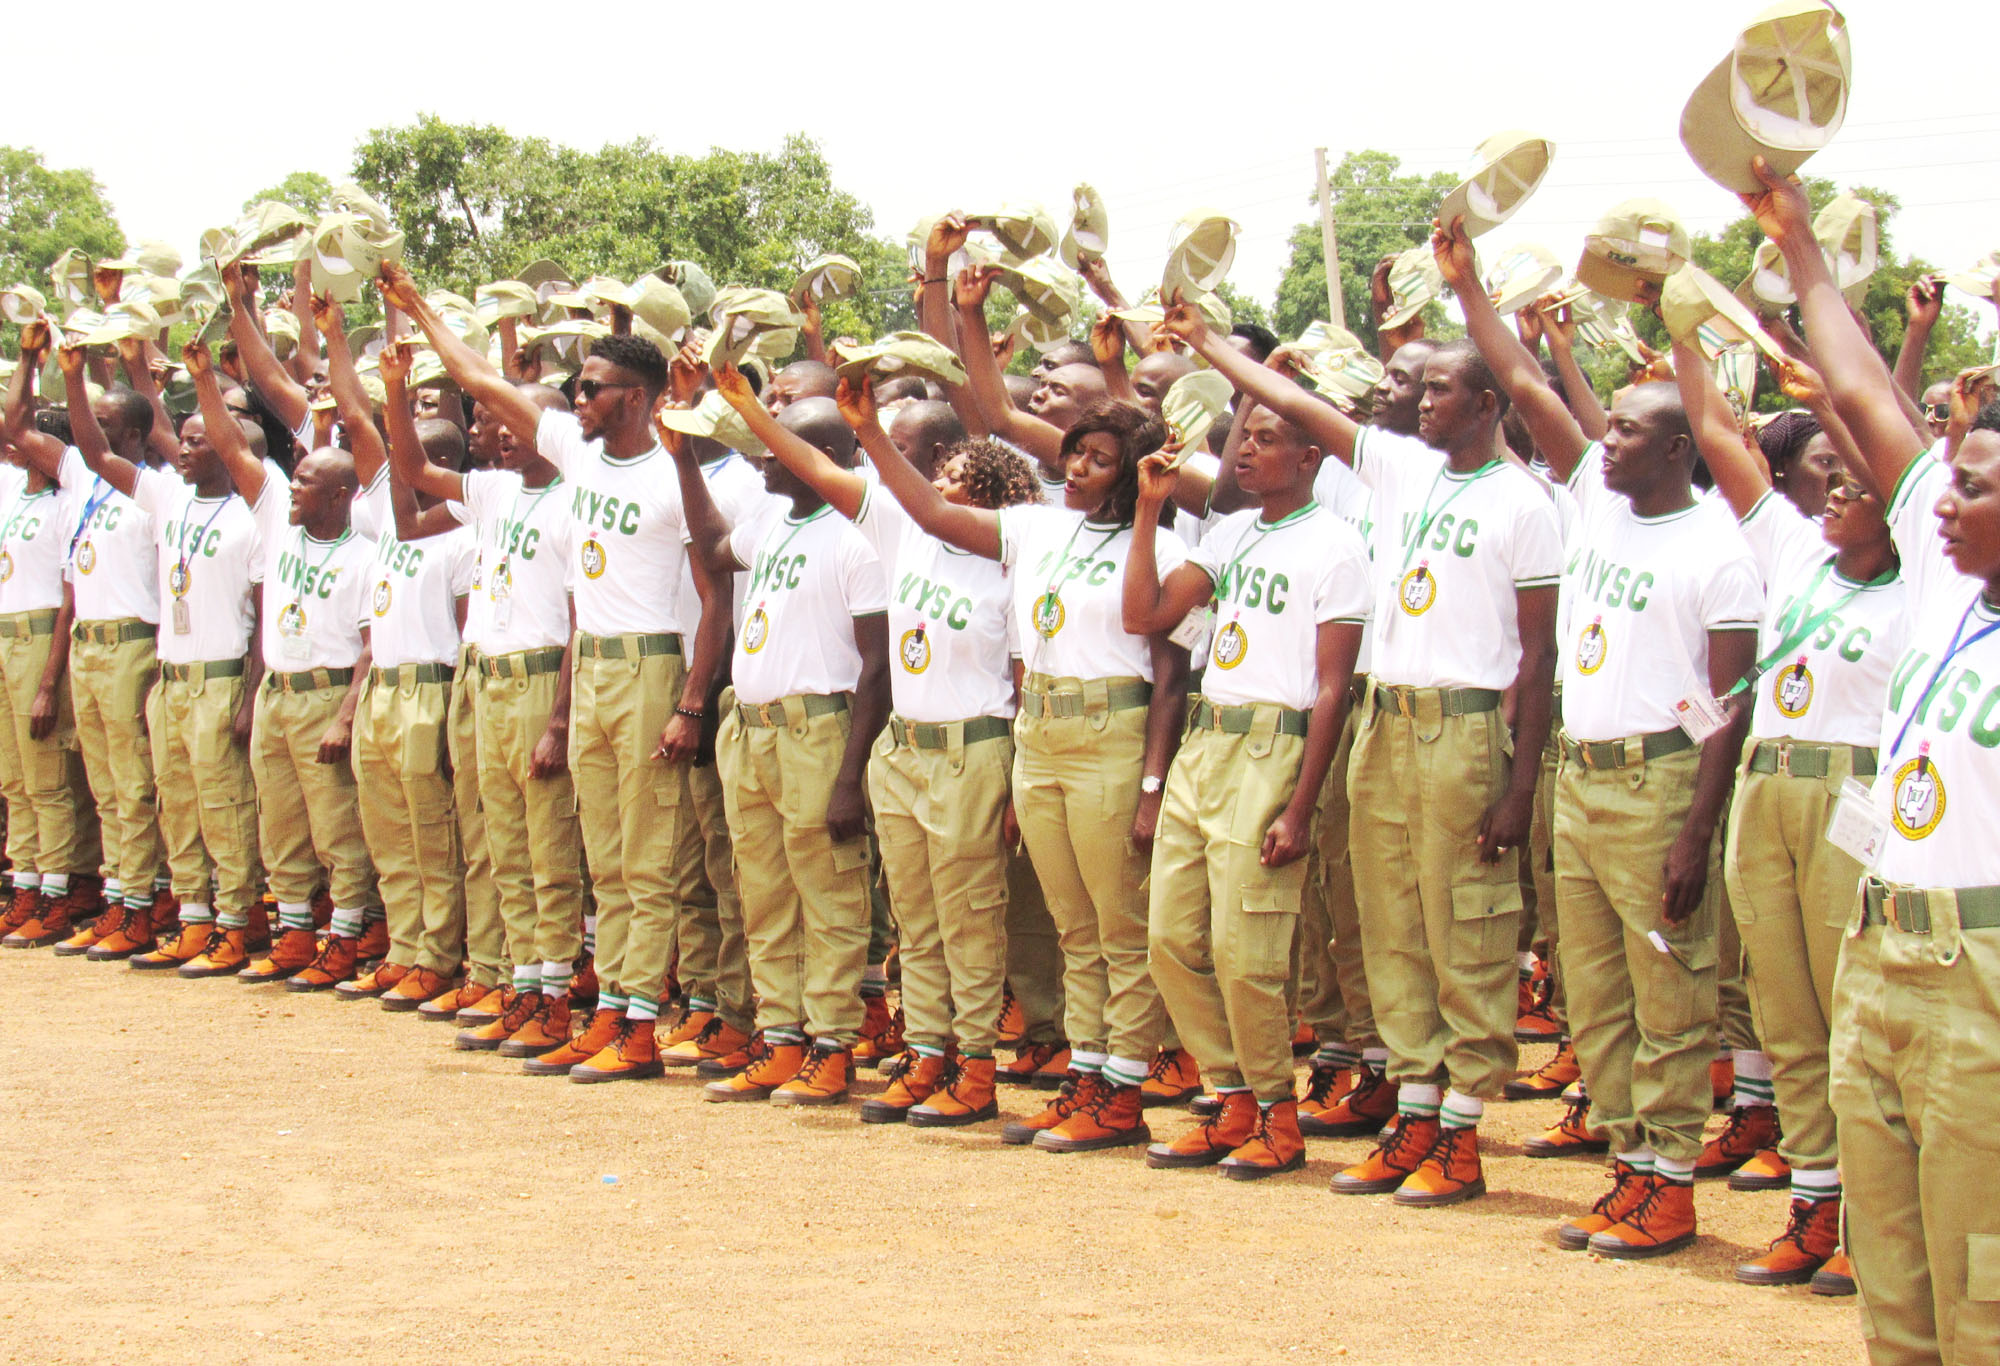 Corps members evicted from Ebonyi camp for refusing to wear trousers - Premium Times